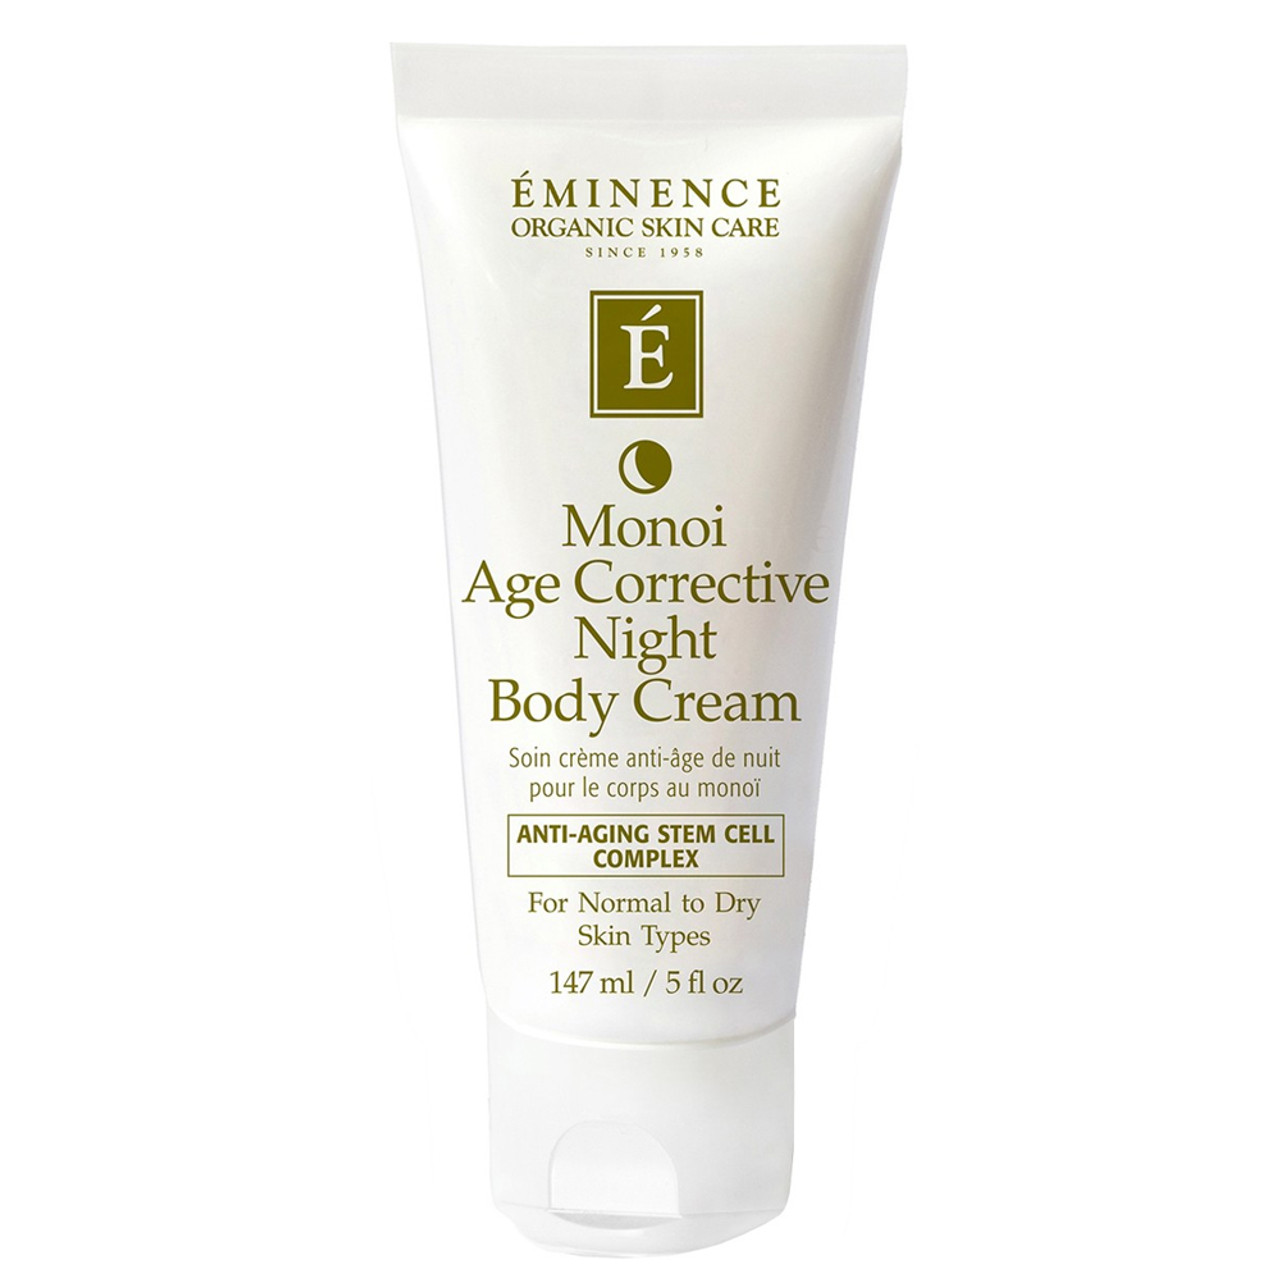 Eminence Monoi Age Corrective Night Body Cream